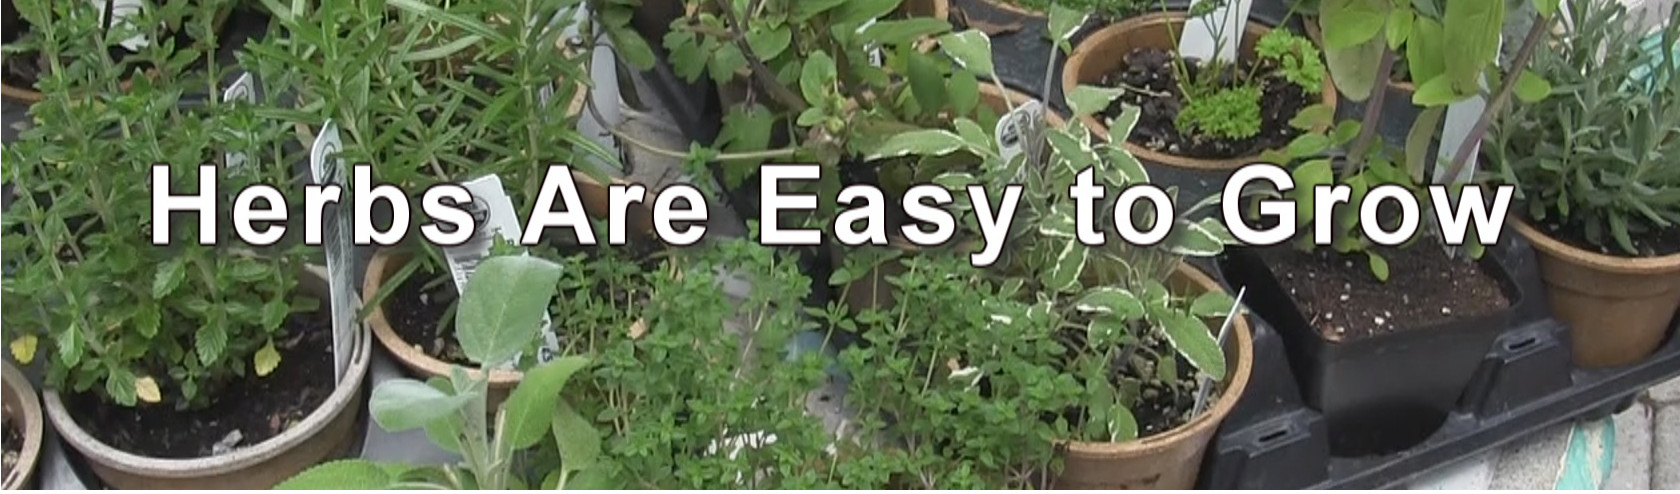 Herbs easy to grow